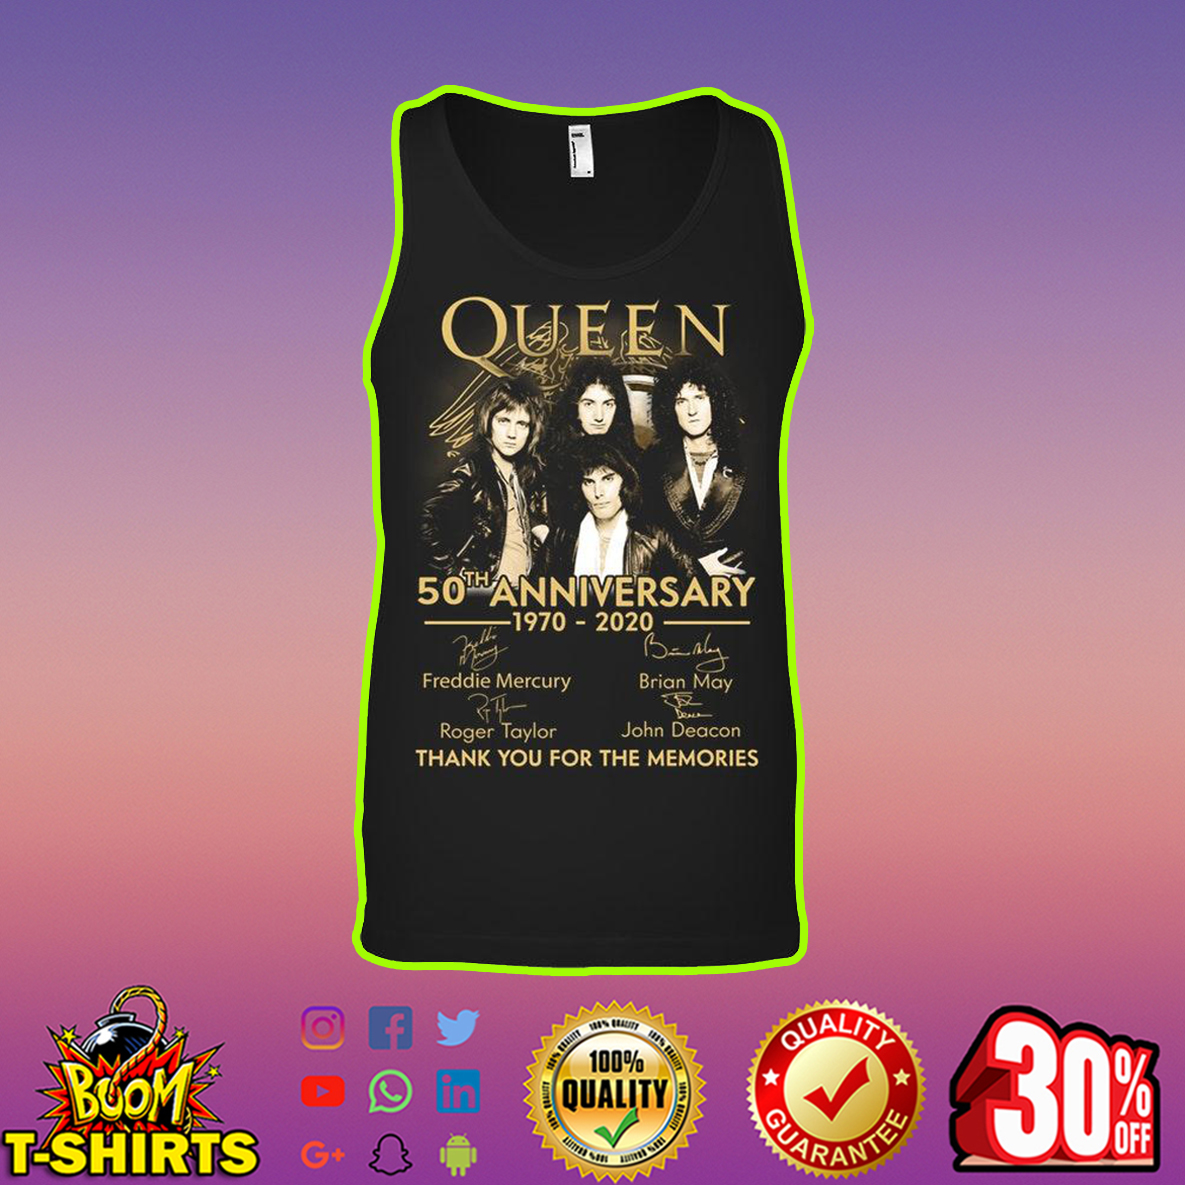 Queen 50th Anniversary 1970 2020 Thank You For The Memories tank top